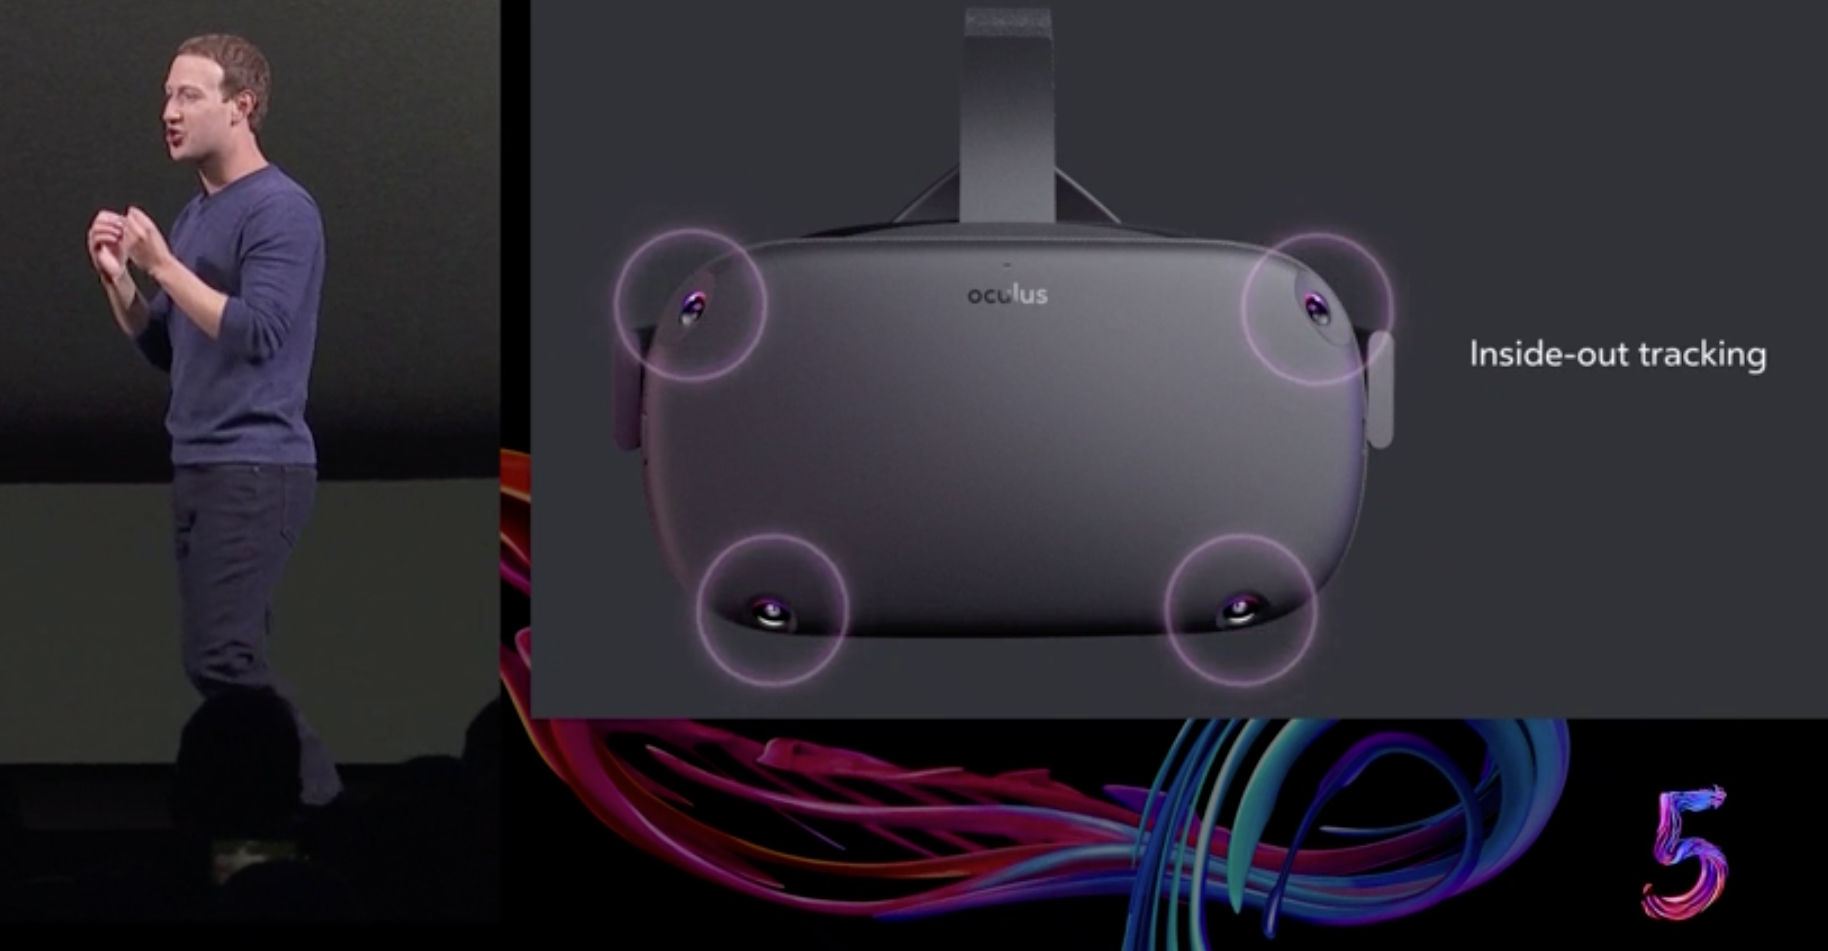 Facebook's newest VR headset, Oculus Quest, ships in the